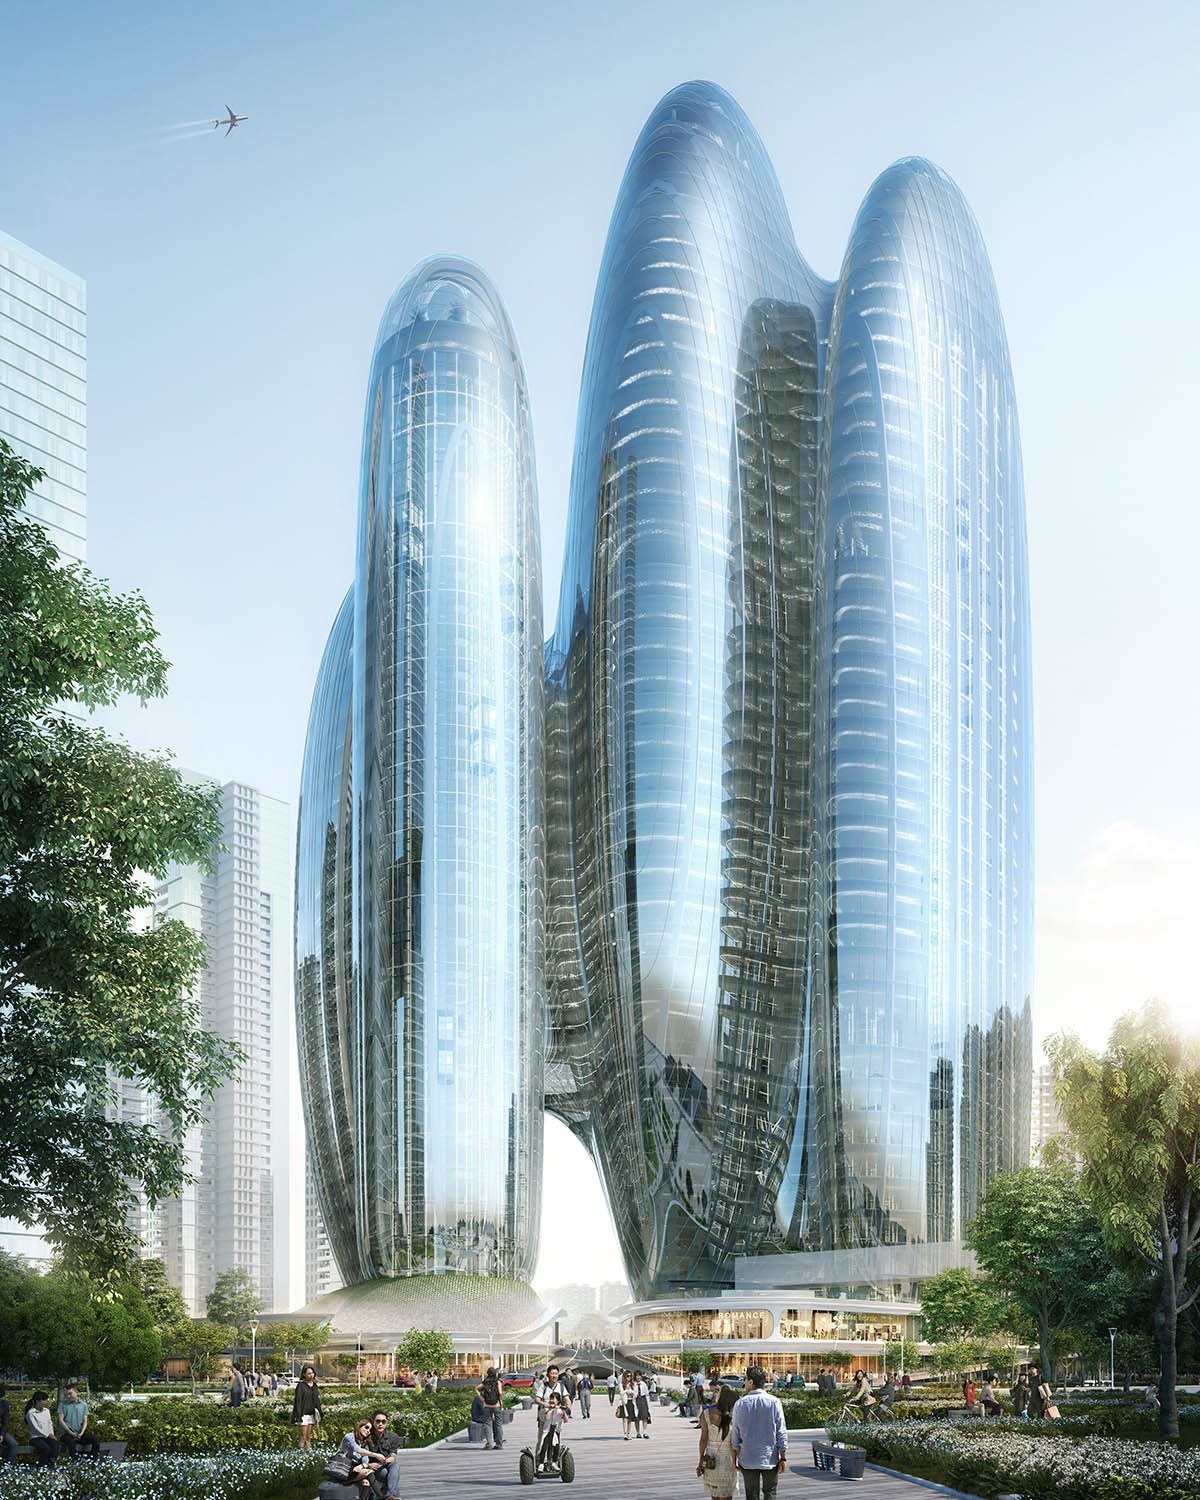 ZHA has released its design for four rounded and interconnected towers in Shenzhen, China, which will form the new headquarters of OPPO China's leading smartphone manufacturer